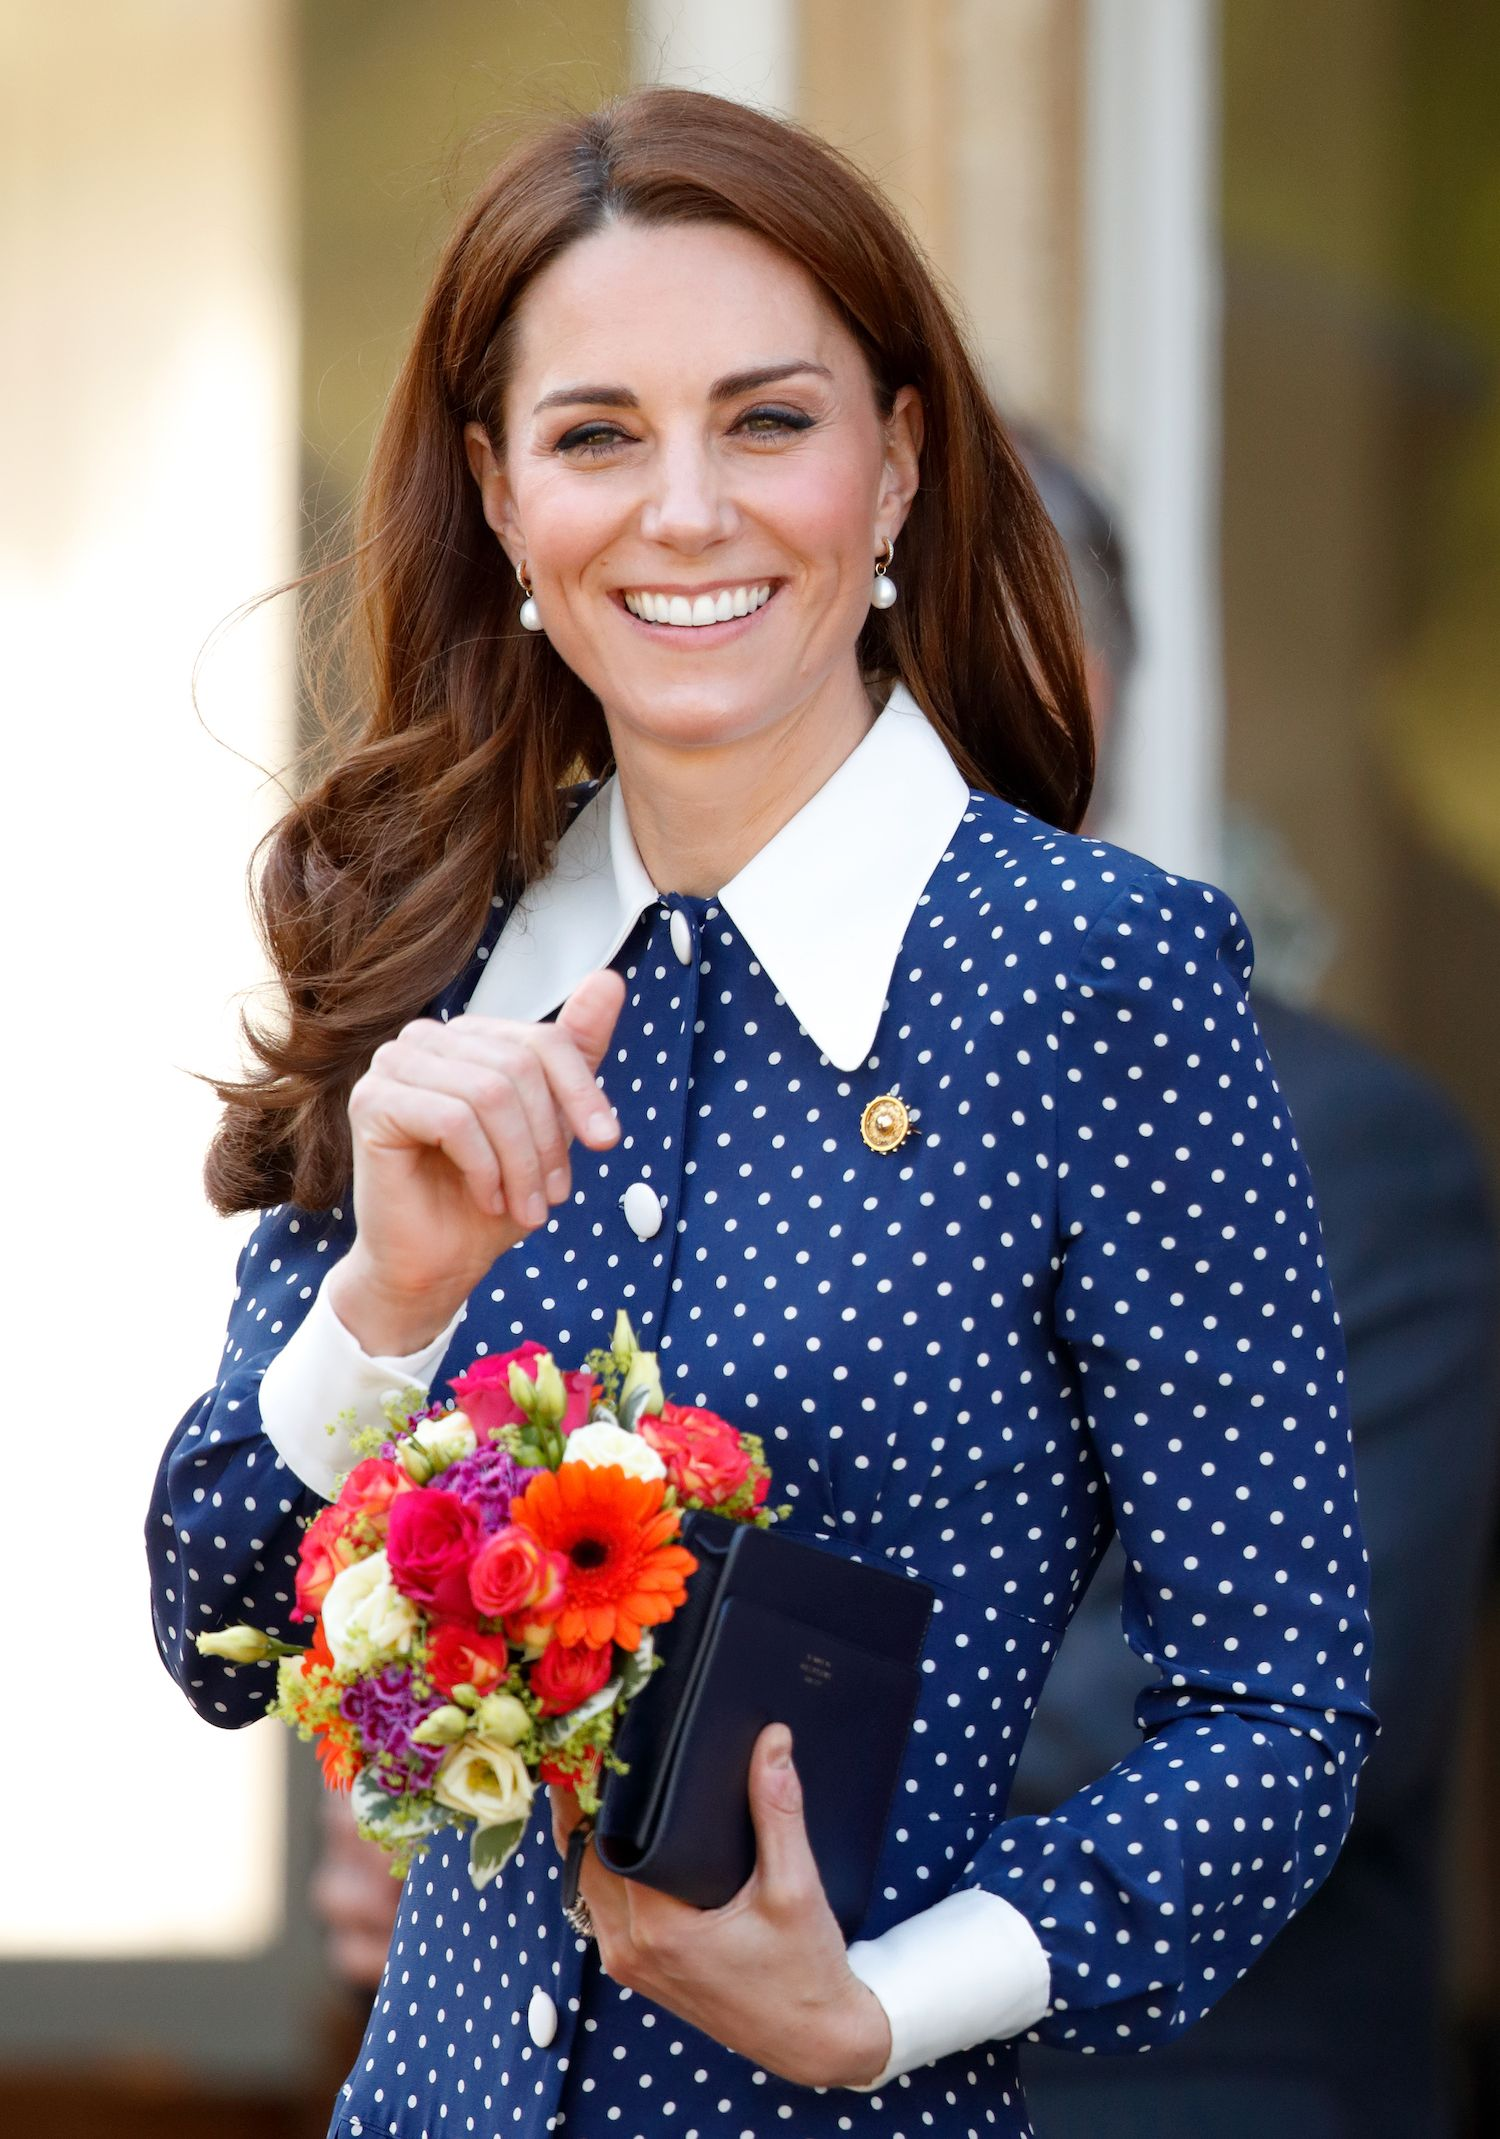 """Kate Middleton Shares """"Heartbreaking"""" Parenting Struggle at the Chelsea Flower Show"""